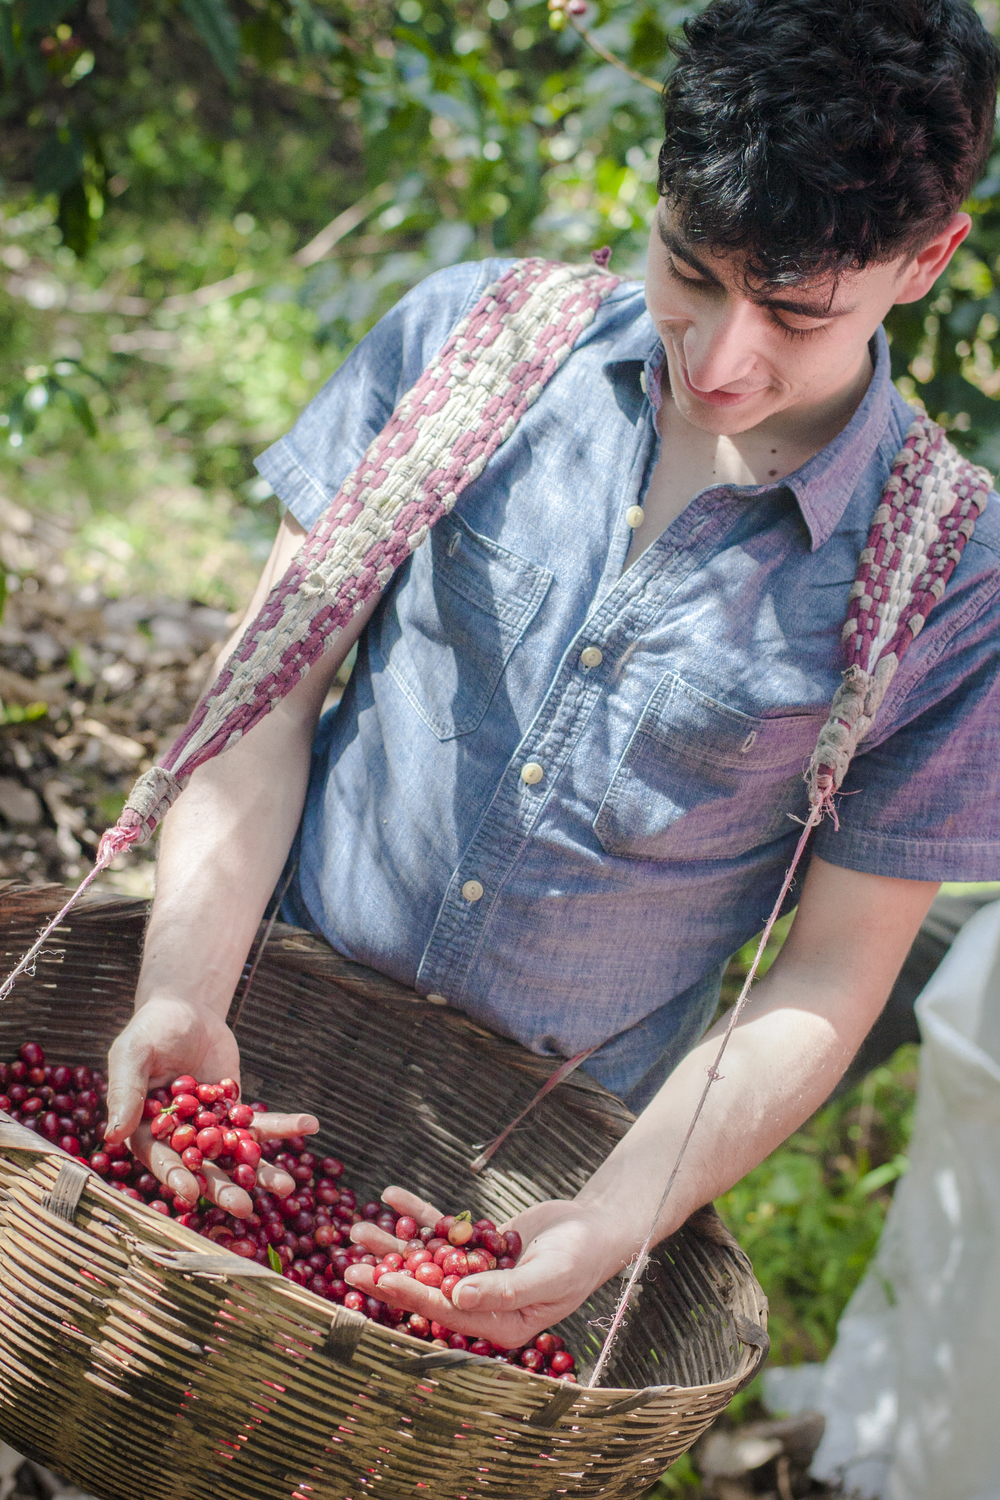 After a long hike we had the chance to pick our own coffee cherries.